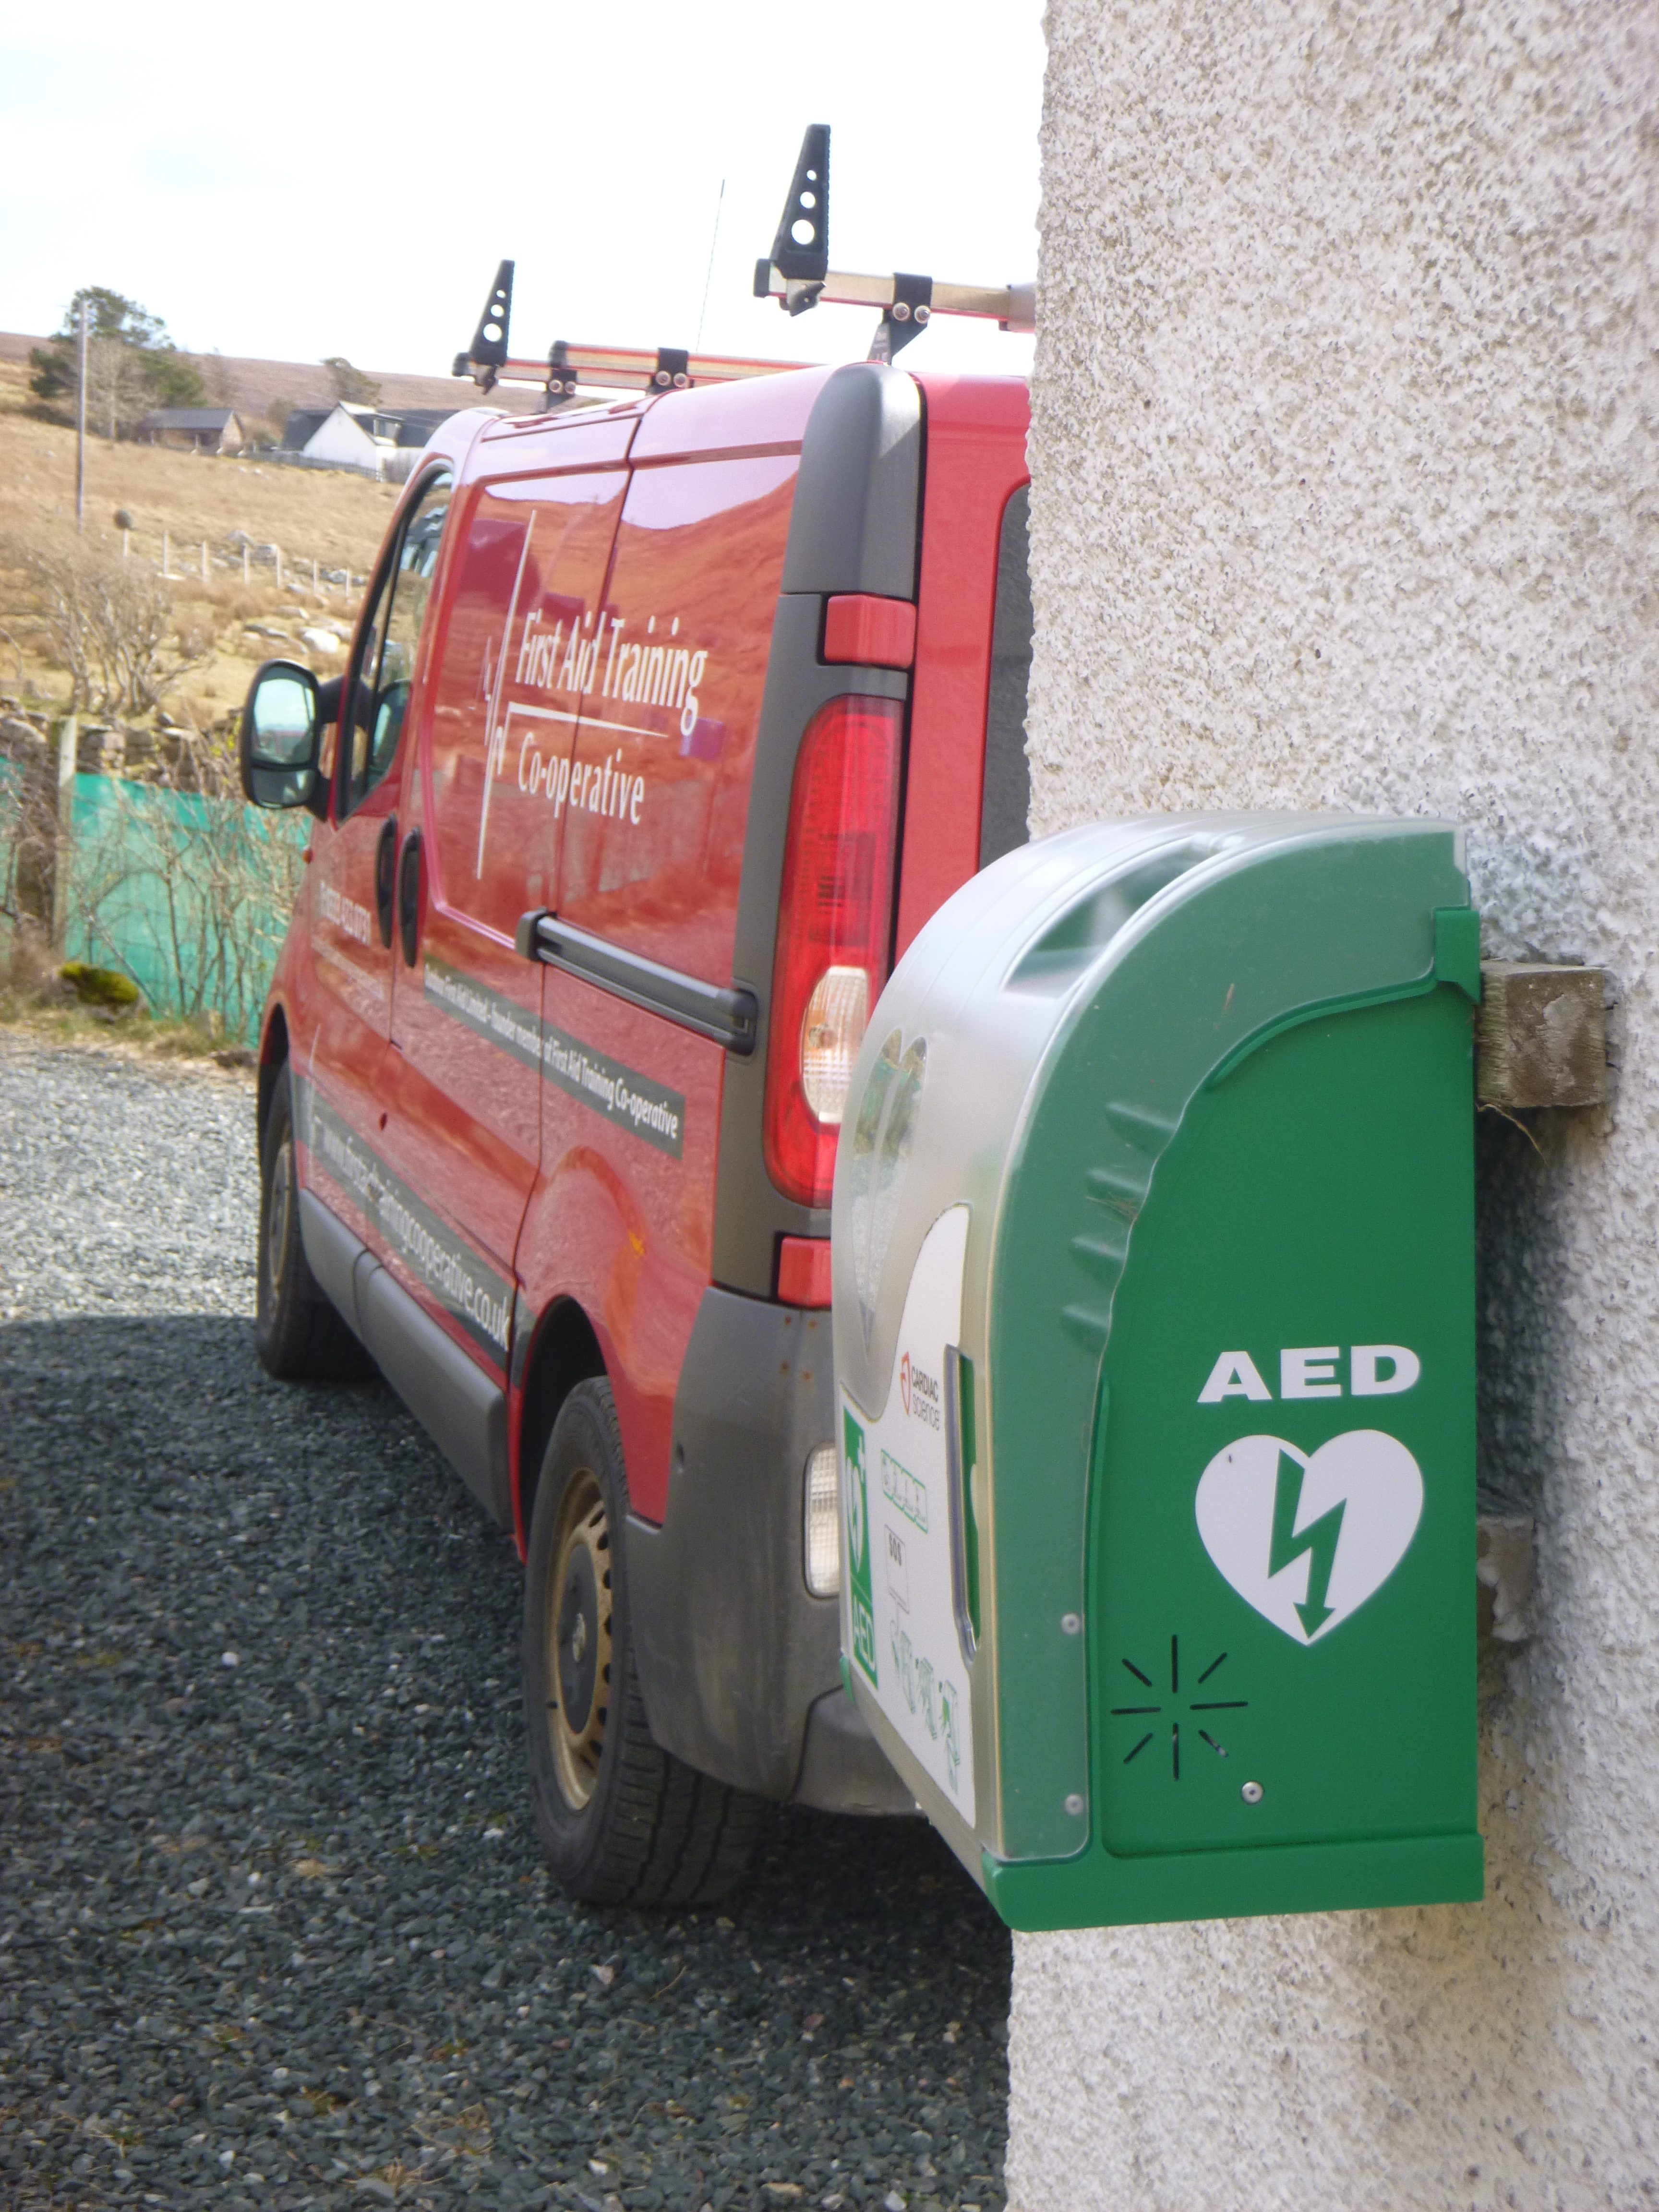 How to maintain your local AED? - First Aid Training Cooperative